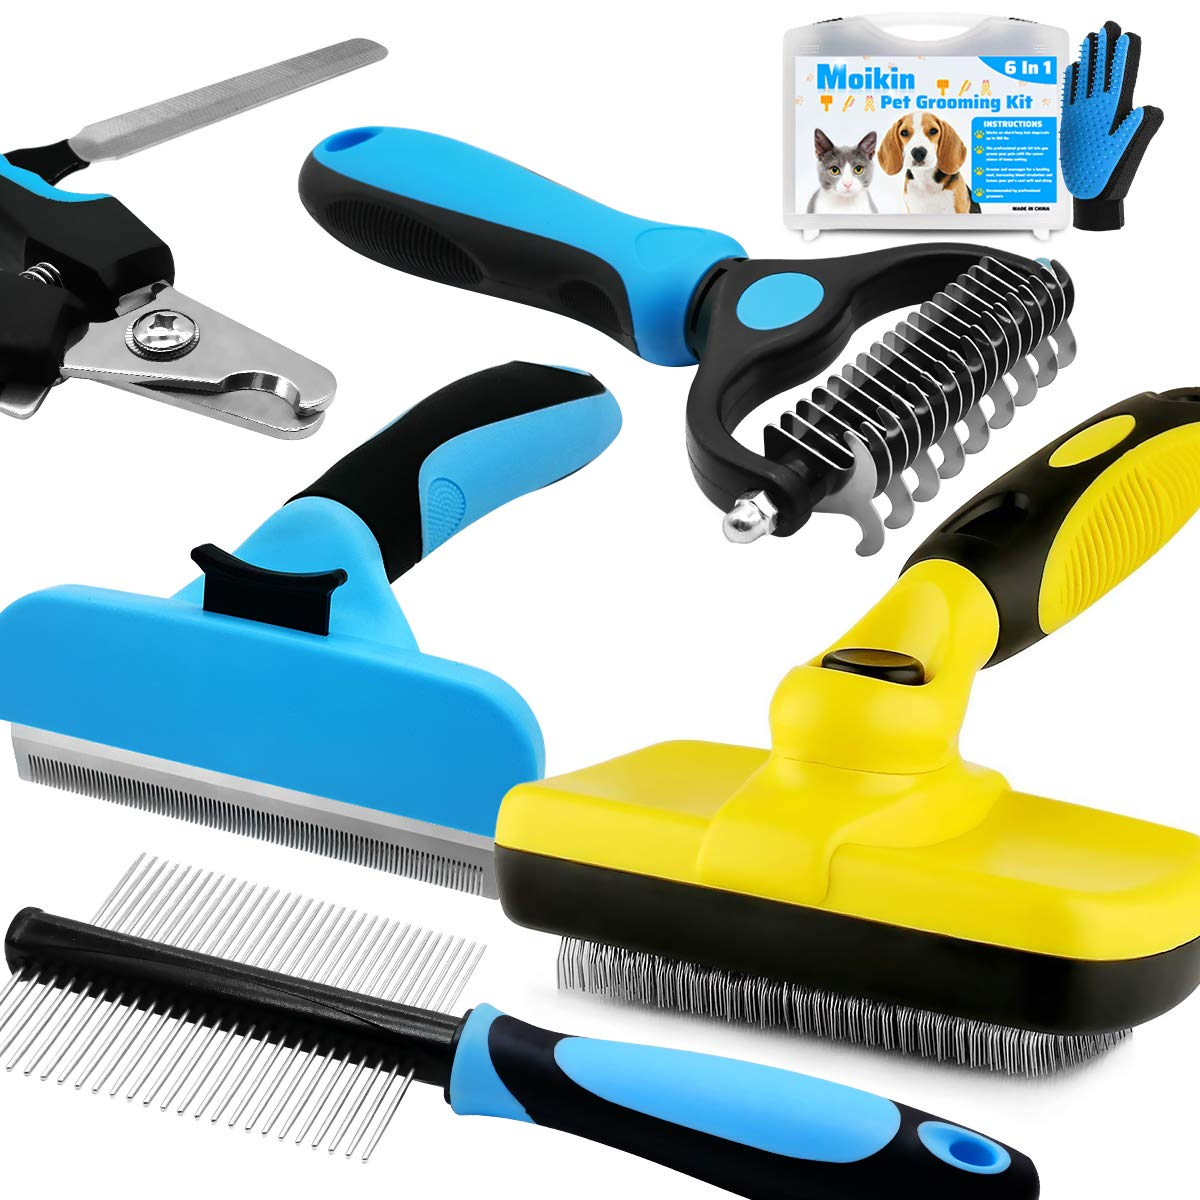 Moikin 7 in 1 Professional Pet Grooming Tool Kit Box - Dog & Cat Self Cleaning Wire Slicker Brush, Nail Clippers & File Trimmer, Deshedding Tool, Dematting Comb, Grooming Comb, Undercoat Rake, Glove